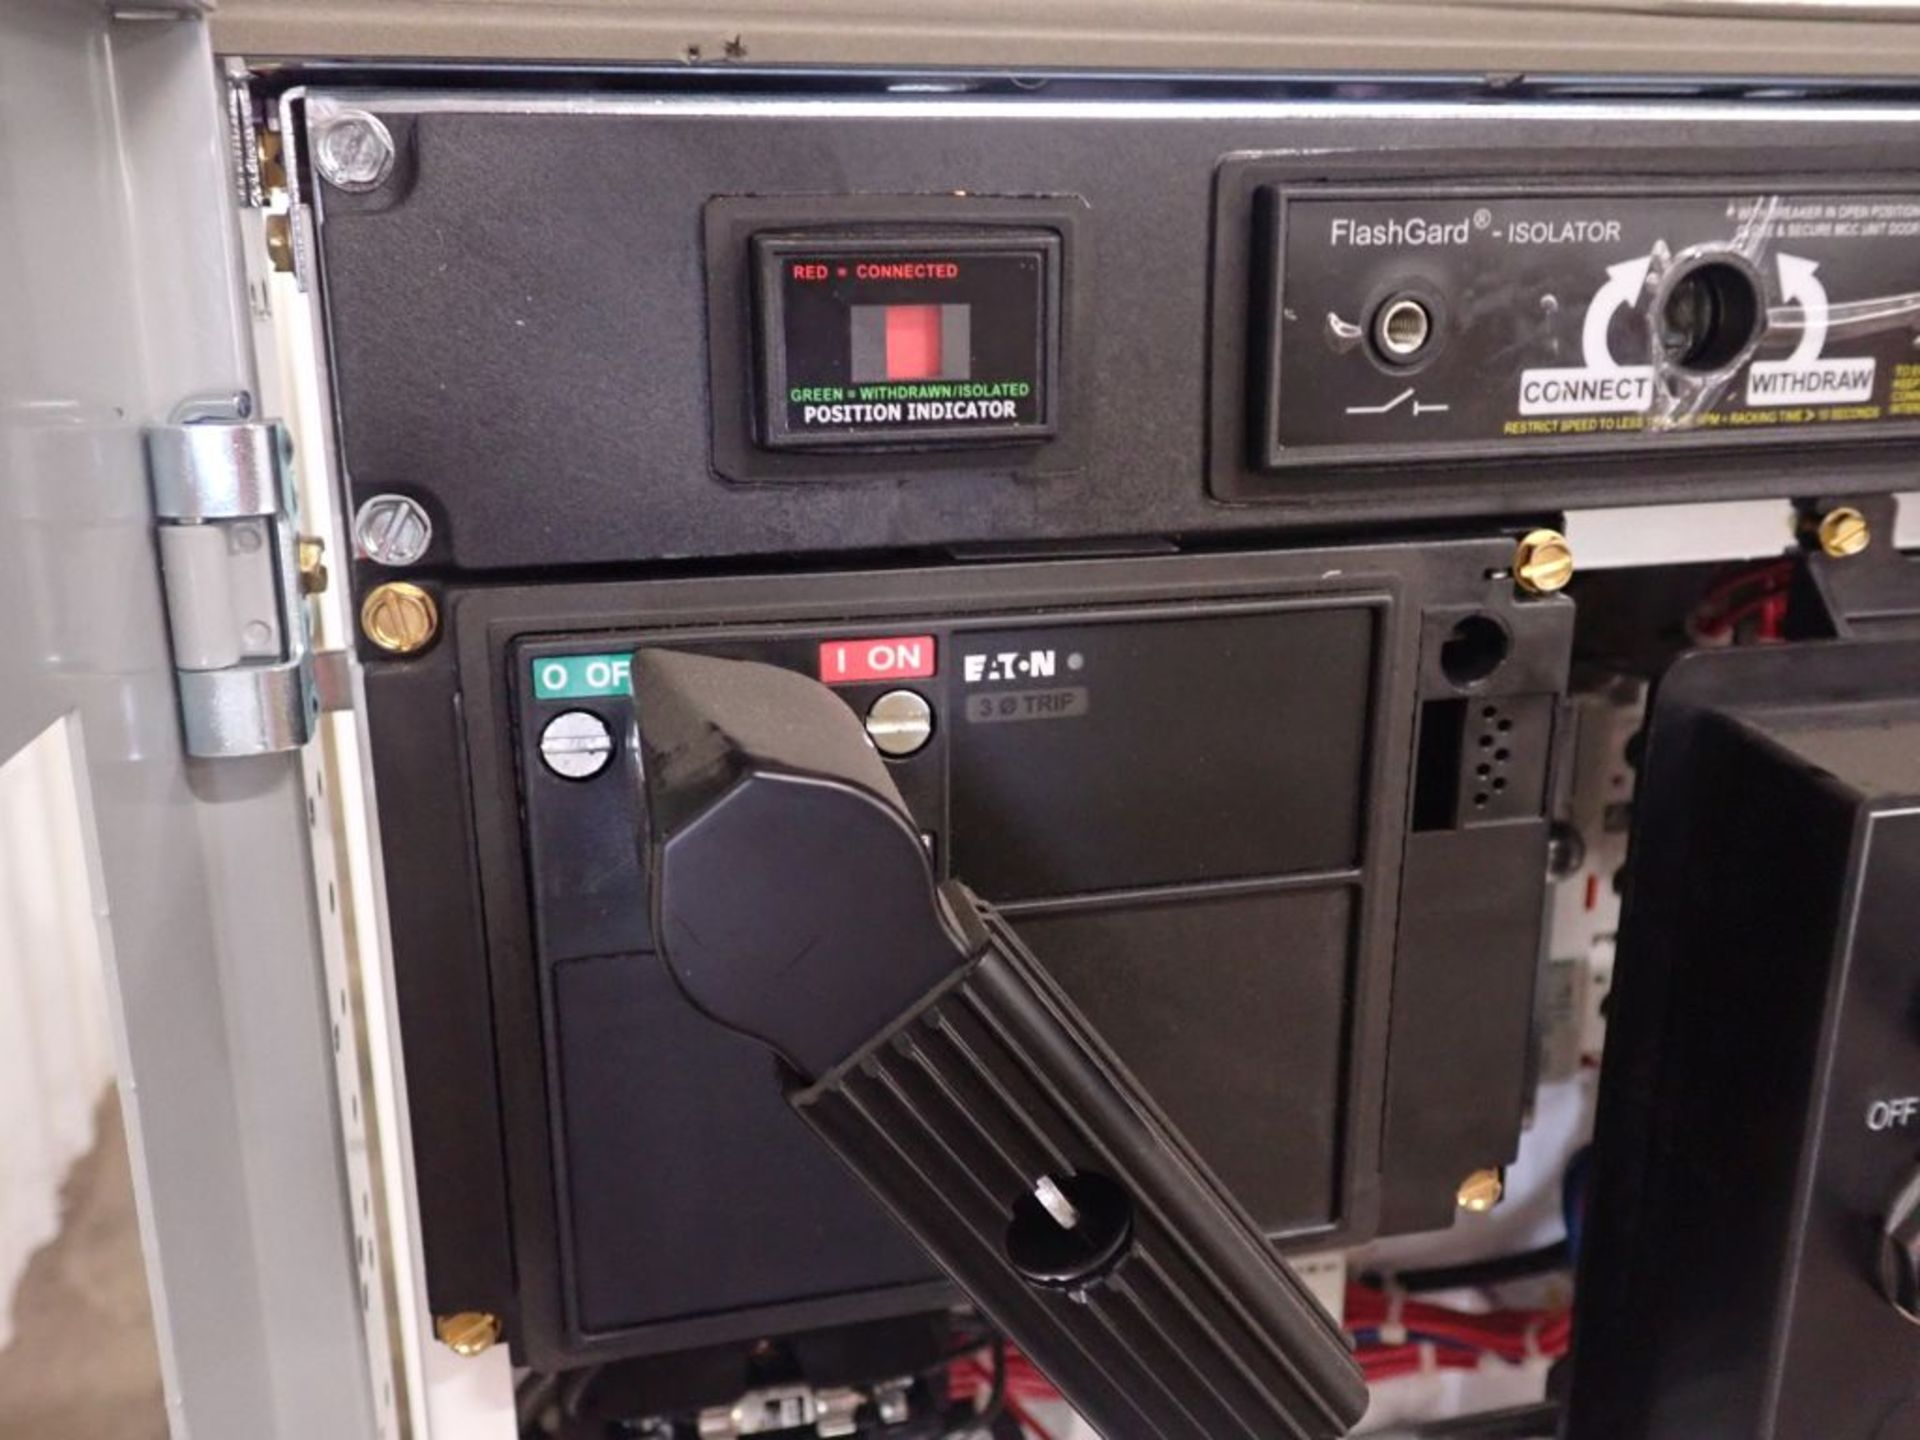 Eaton Freedom 2100 Series Motor Control Center | (2) F208-30A; (1) F208-40A; (1) FDRB-50A; (2) - Image 14 of 37